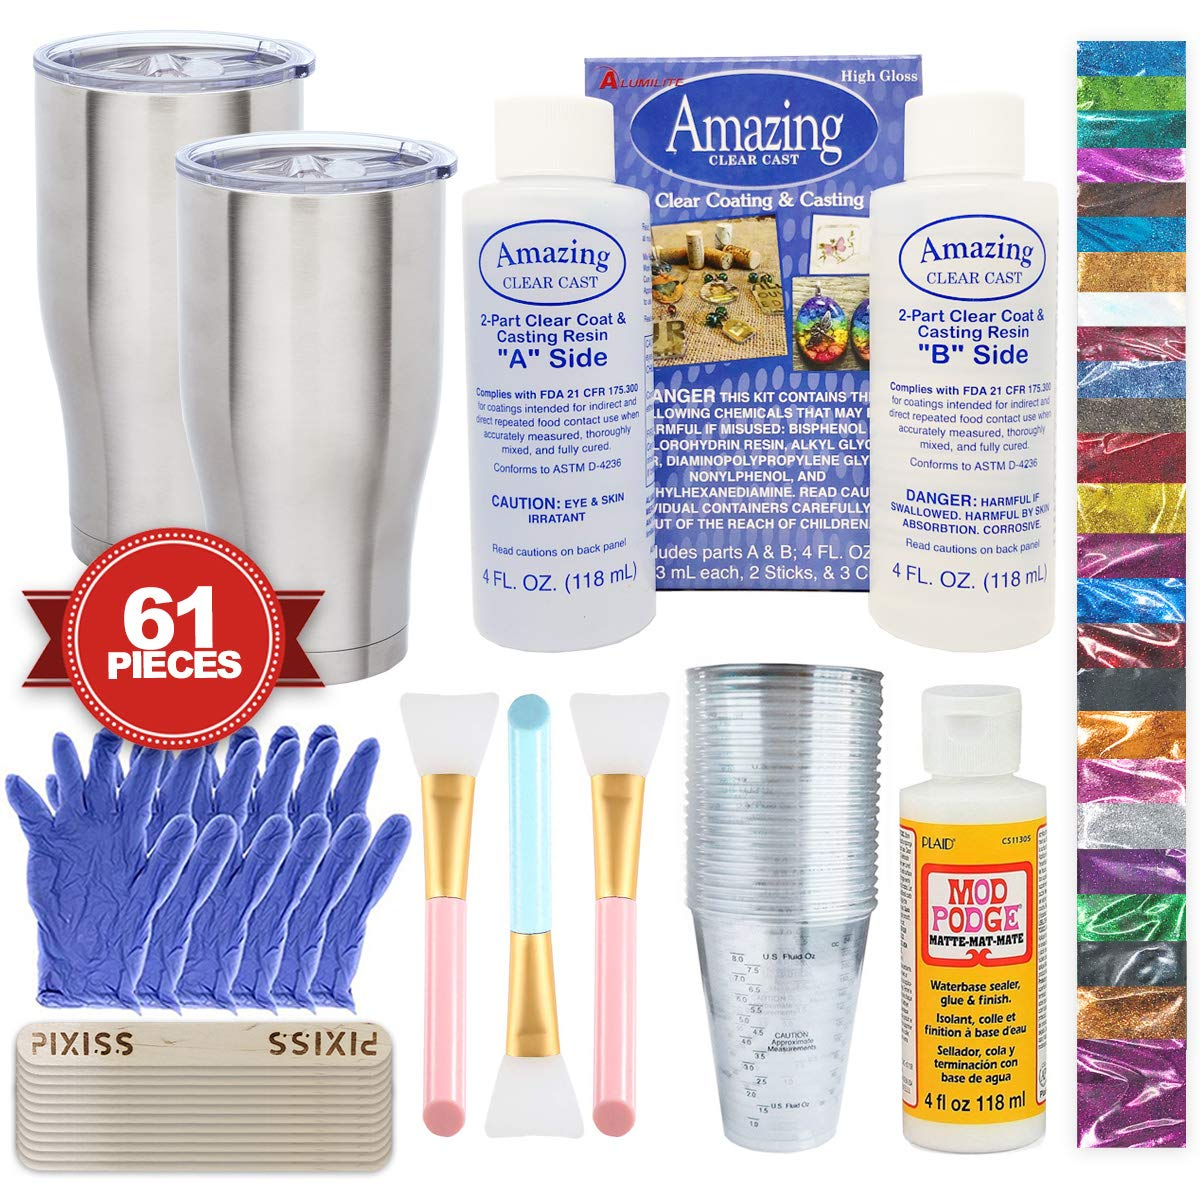 Epoxy Glitter Tumblers Kit, Includes Amazing Clear Cast Epoxy for Tumblers, Silicone Epoxy Resin Brushes, Glitter, Mod Podge